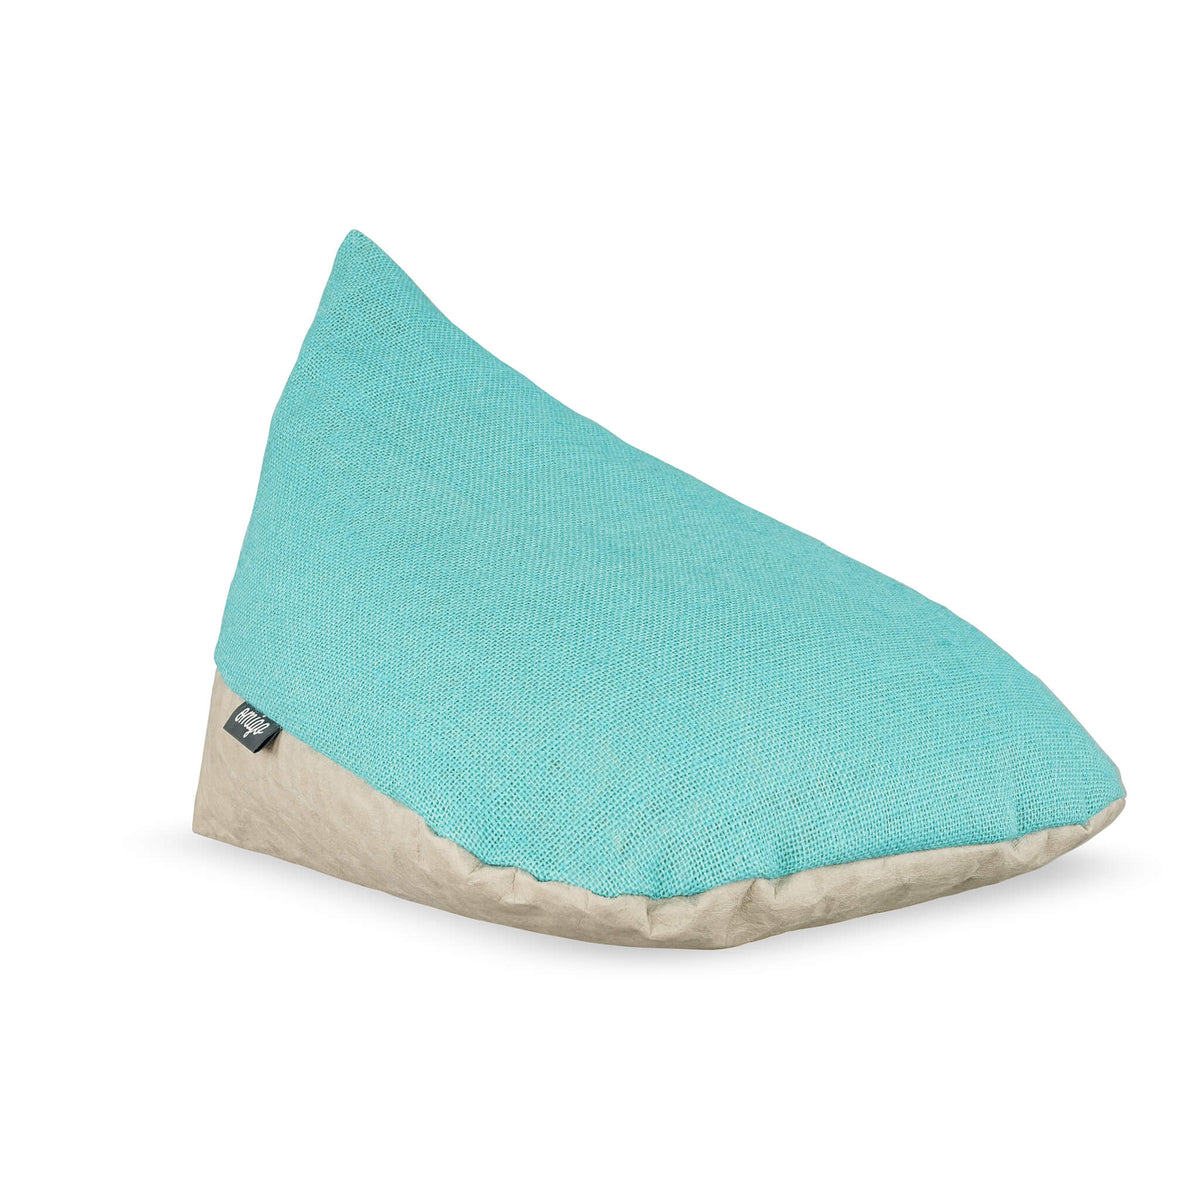 meditation pillow with grey vegan leather base and blue top